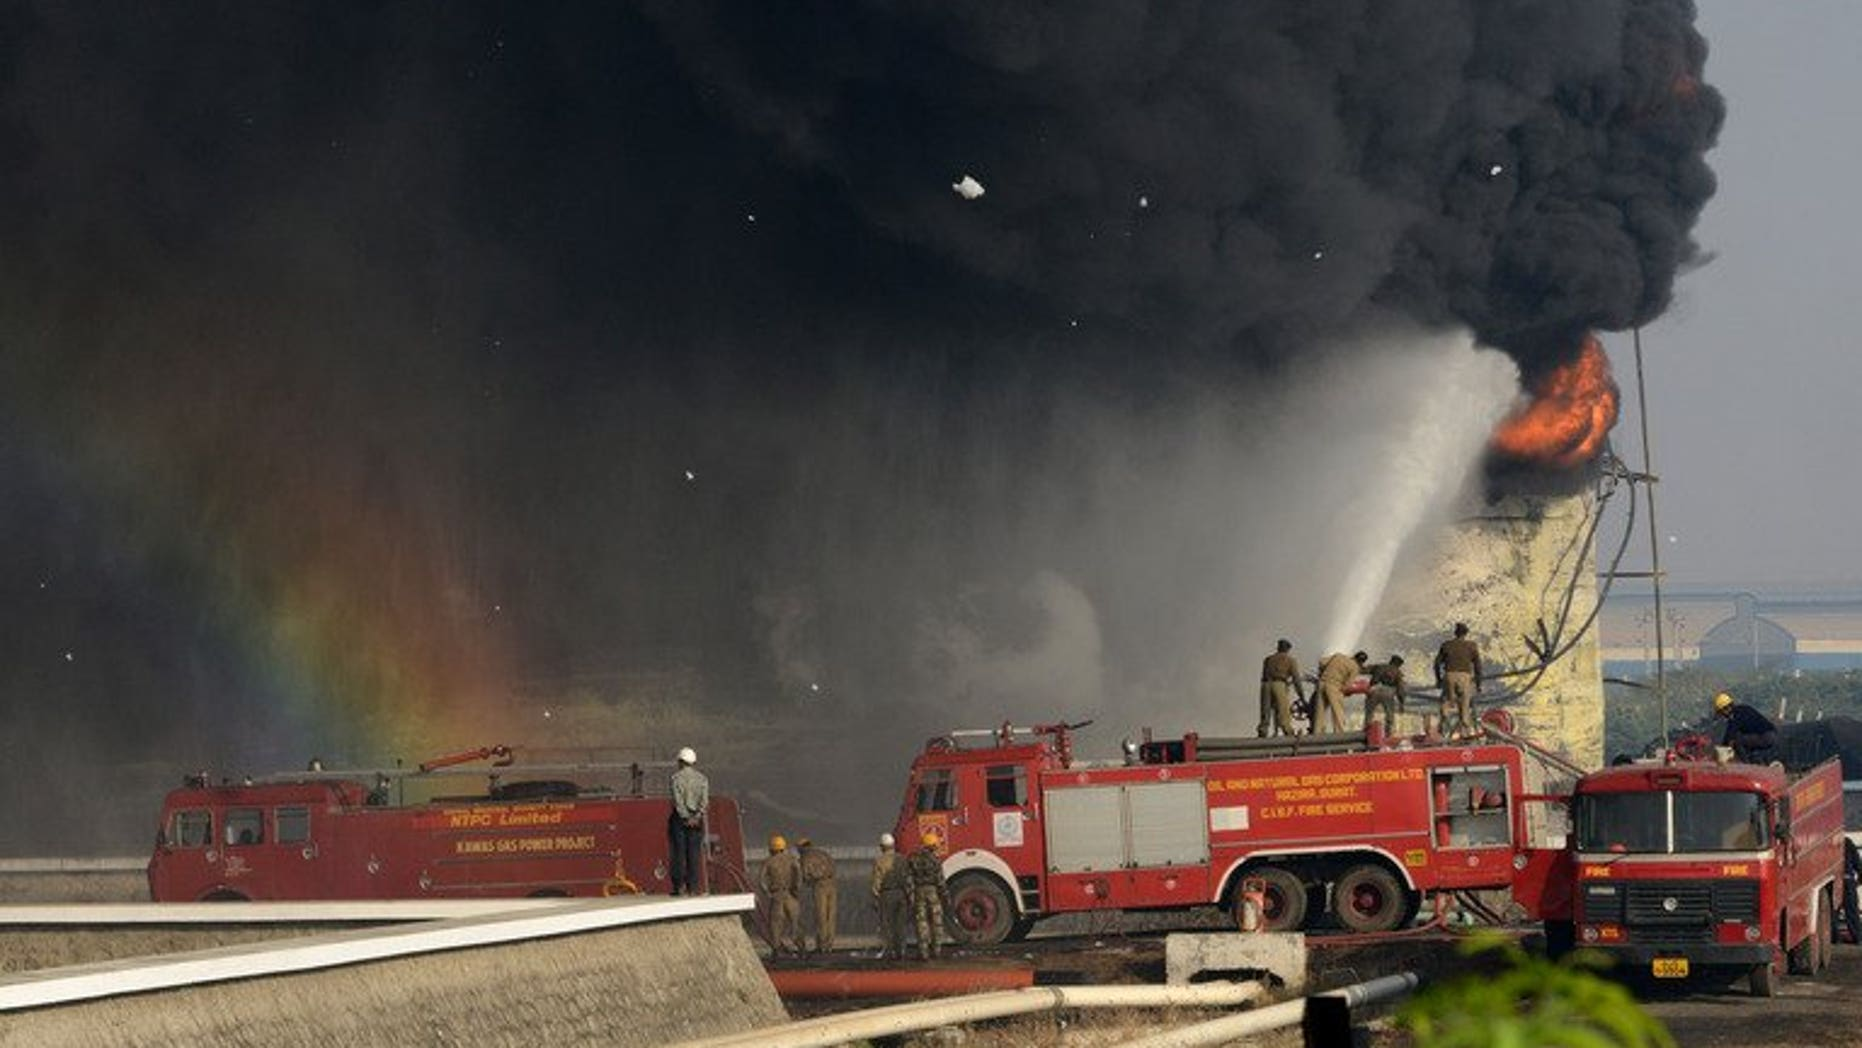 Indian firefighters battle to douse the flames of a burning fuel tank at the Indian Oil Corporation plant at Hajira near Surat, some 275 kms from Ahmedabad, on January 6, 2013. A massive fire broke out Friday at a petroleum refinery in southern India, killing four workers and leaving dozens injured, police said.